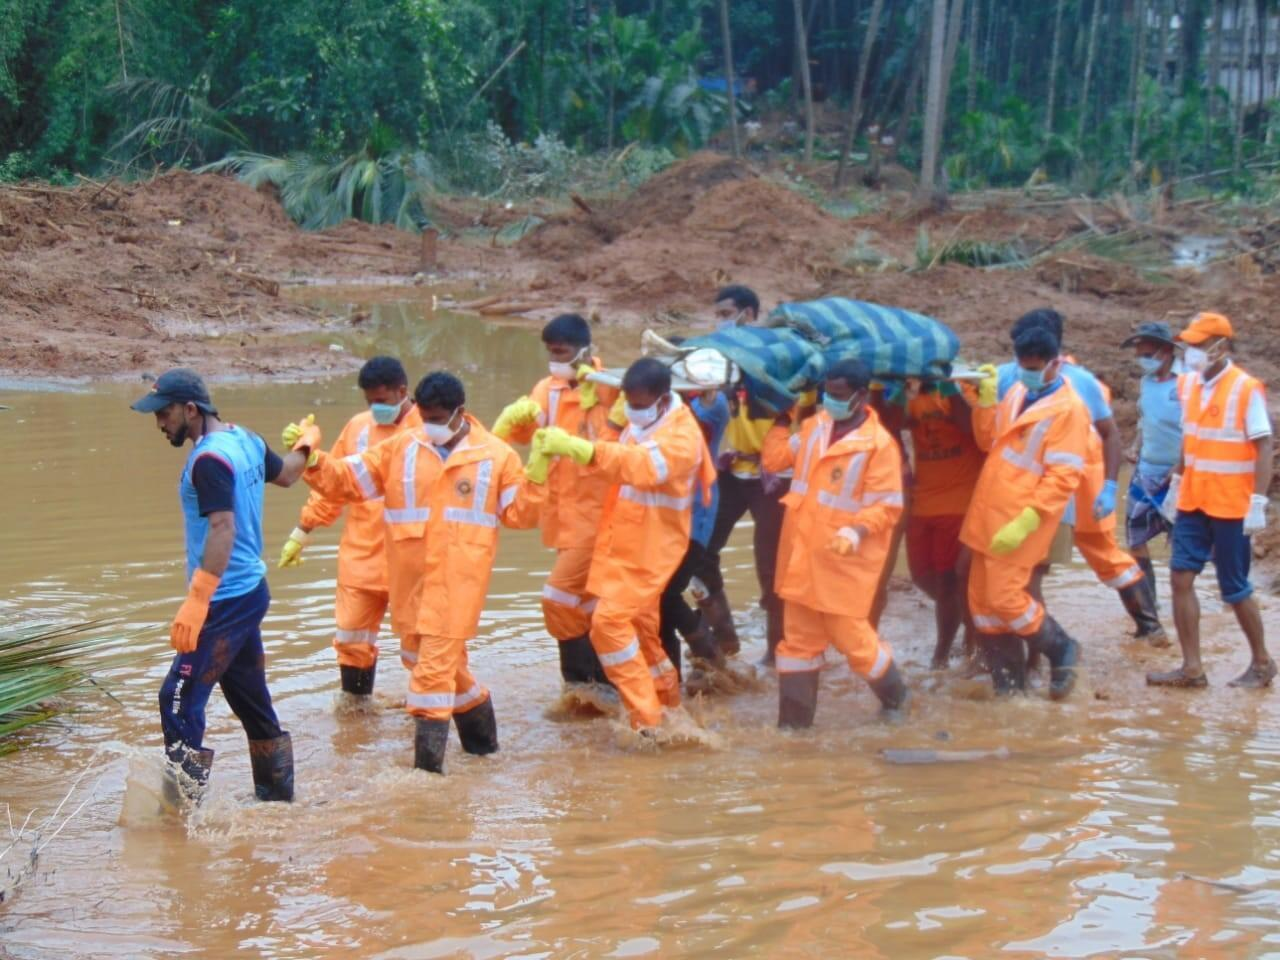 Rescue officials of the National Disaster Relief Force carry a body that was submerged in floods in Kerala.